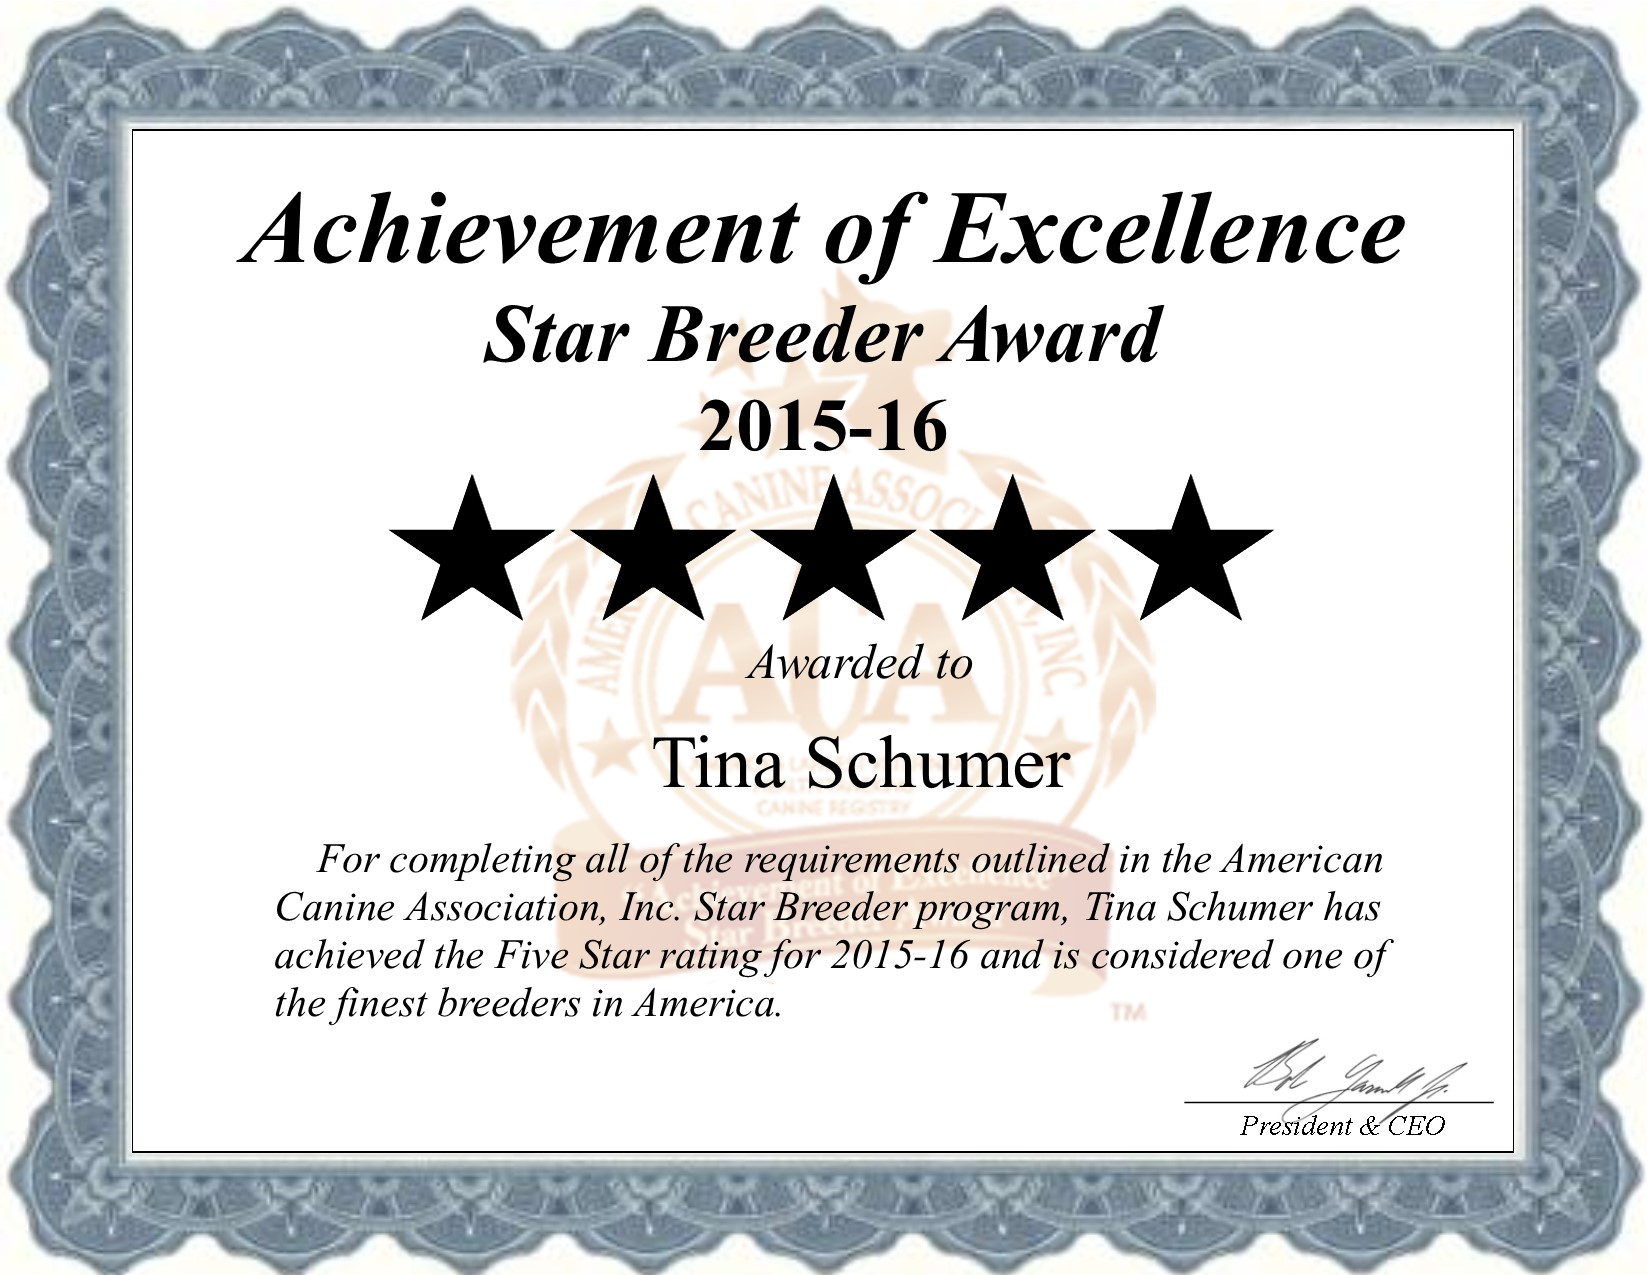 2015, award, Tina, Schumer, dog, breeder, tina-schumer, dog-breeder, Puxico, MO, pup, pups, puppies, USDA, Licensed, Inspected, license, number, kennel, puppies, litter, agriculture, department, dept, dogs, star, breeders, Puxico, county, Missouri, USA, loving, American, Canine, Association, program, ACA, breeding, application, registration, requirements, records, best, finest, achievement, excellence, health, shows, education, puppymill, breeder, mill, 5